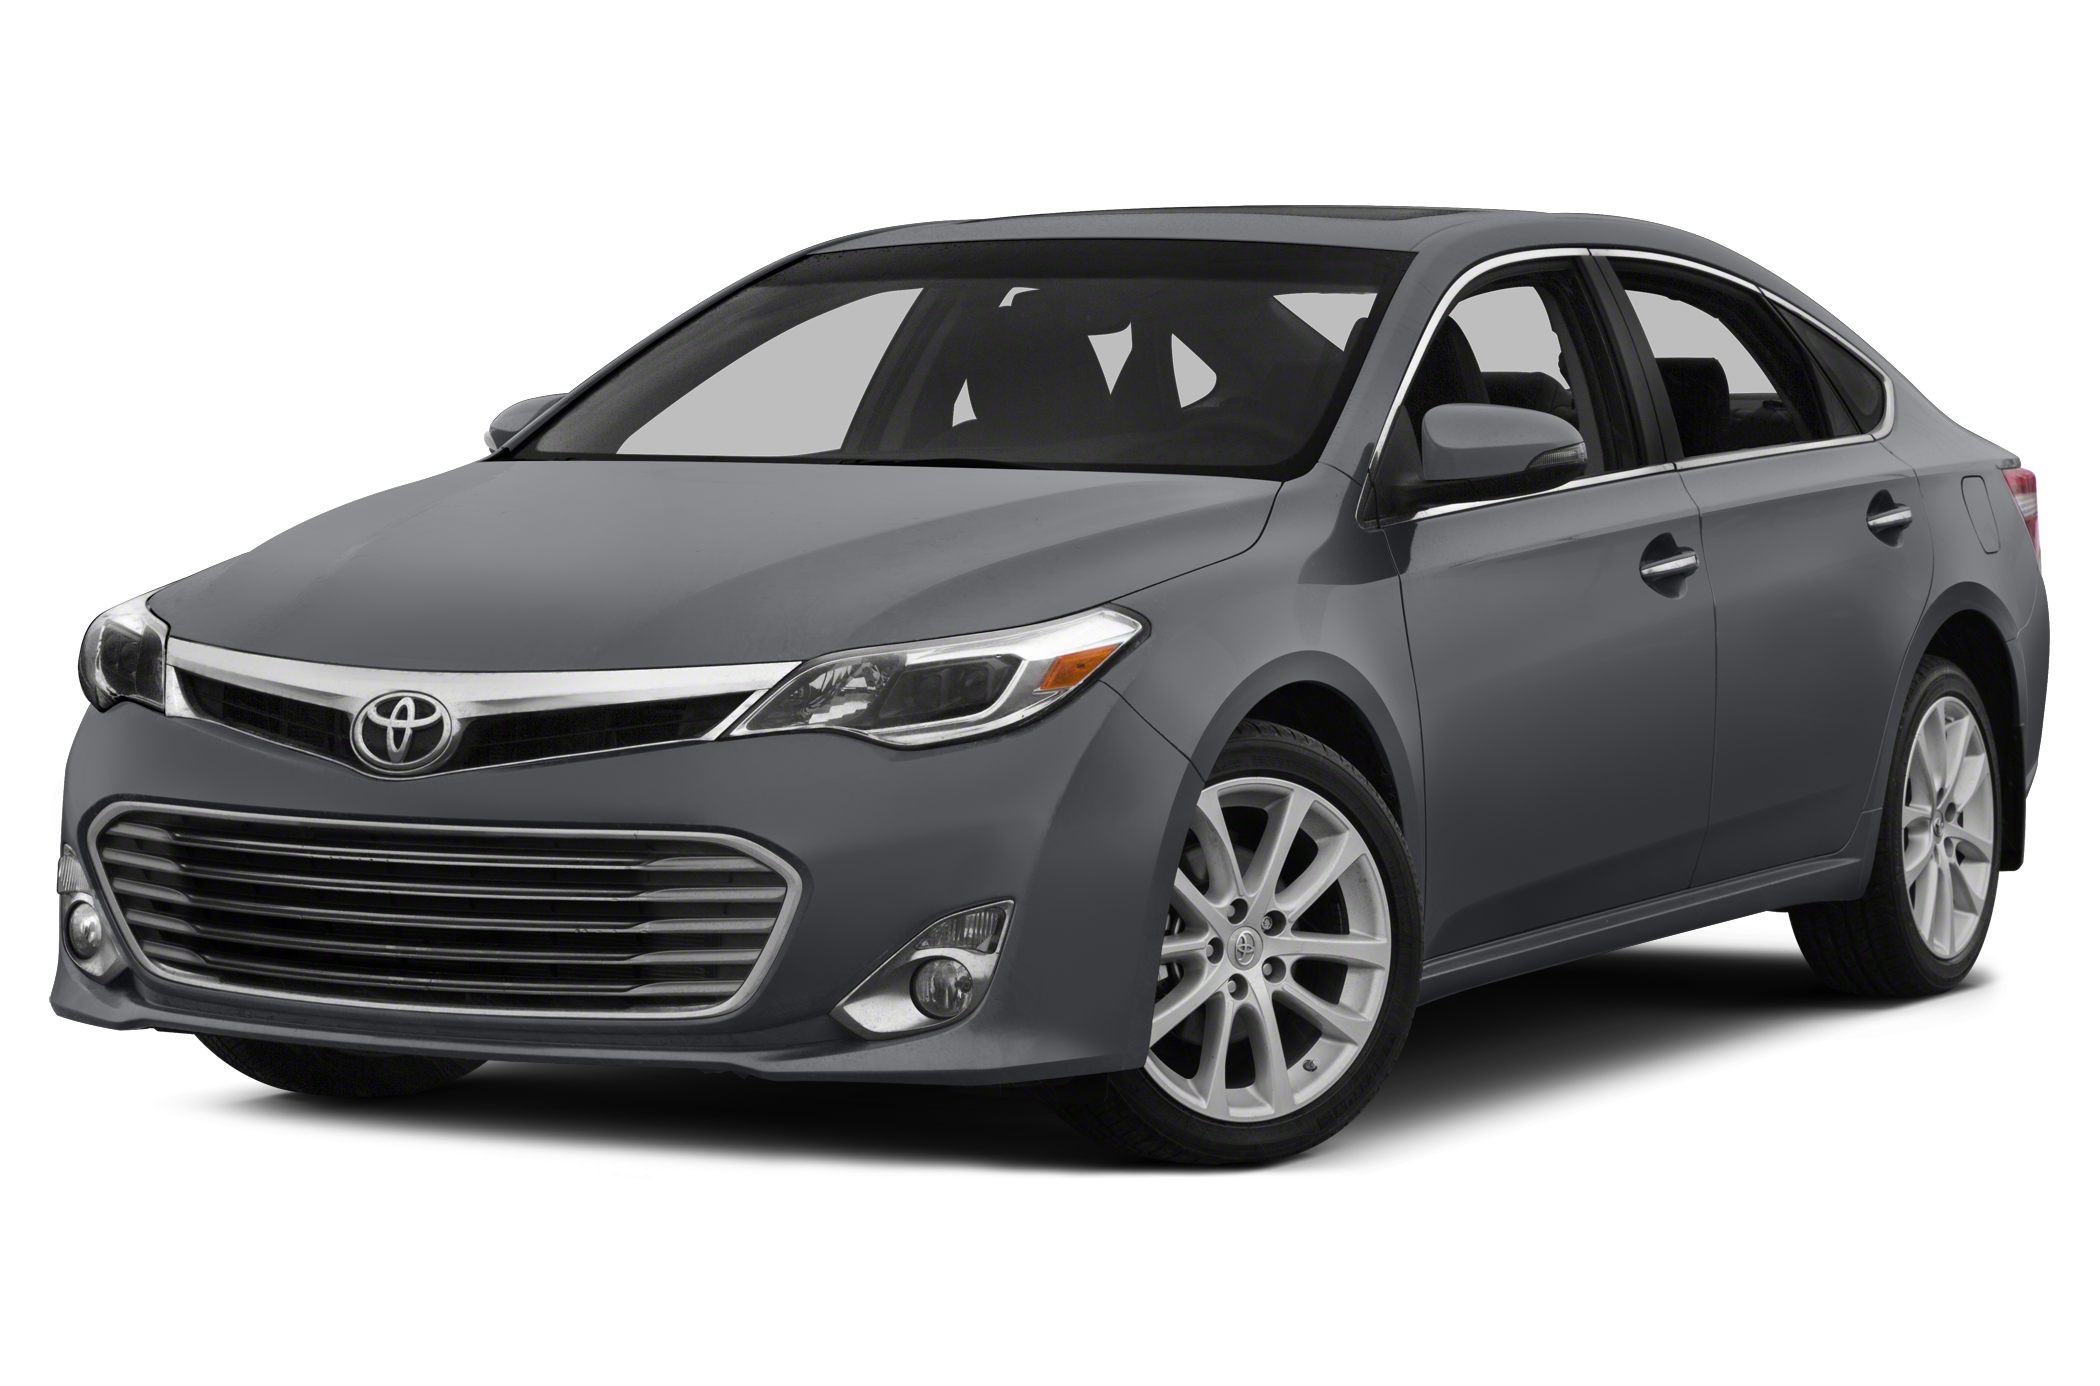 2015 Toyota Avalon Limited Sedan for sale in Bethesda for $35,790 with 0 miles